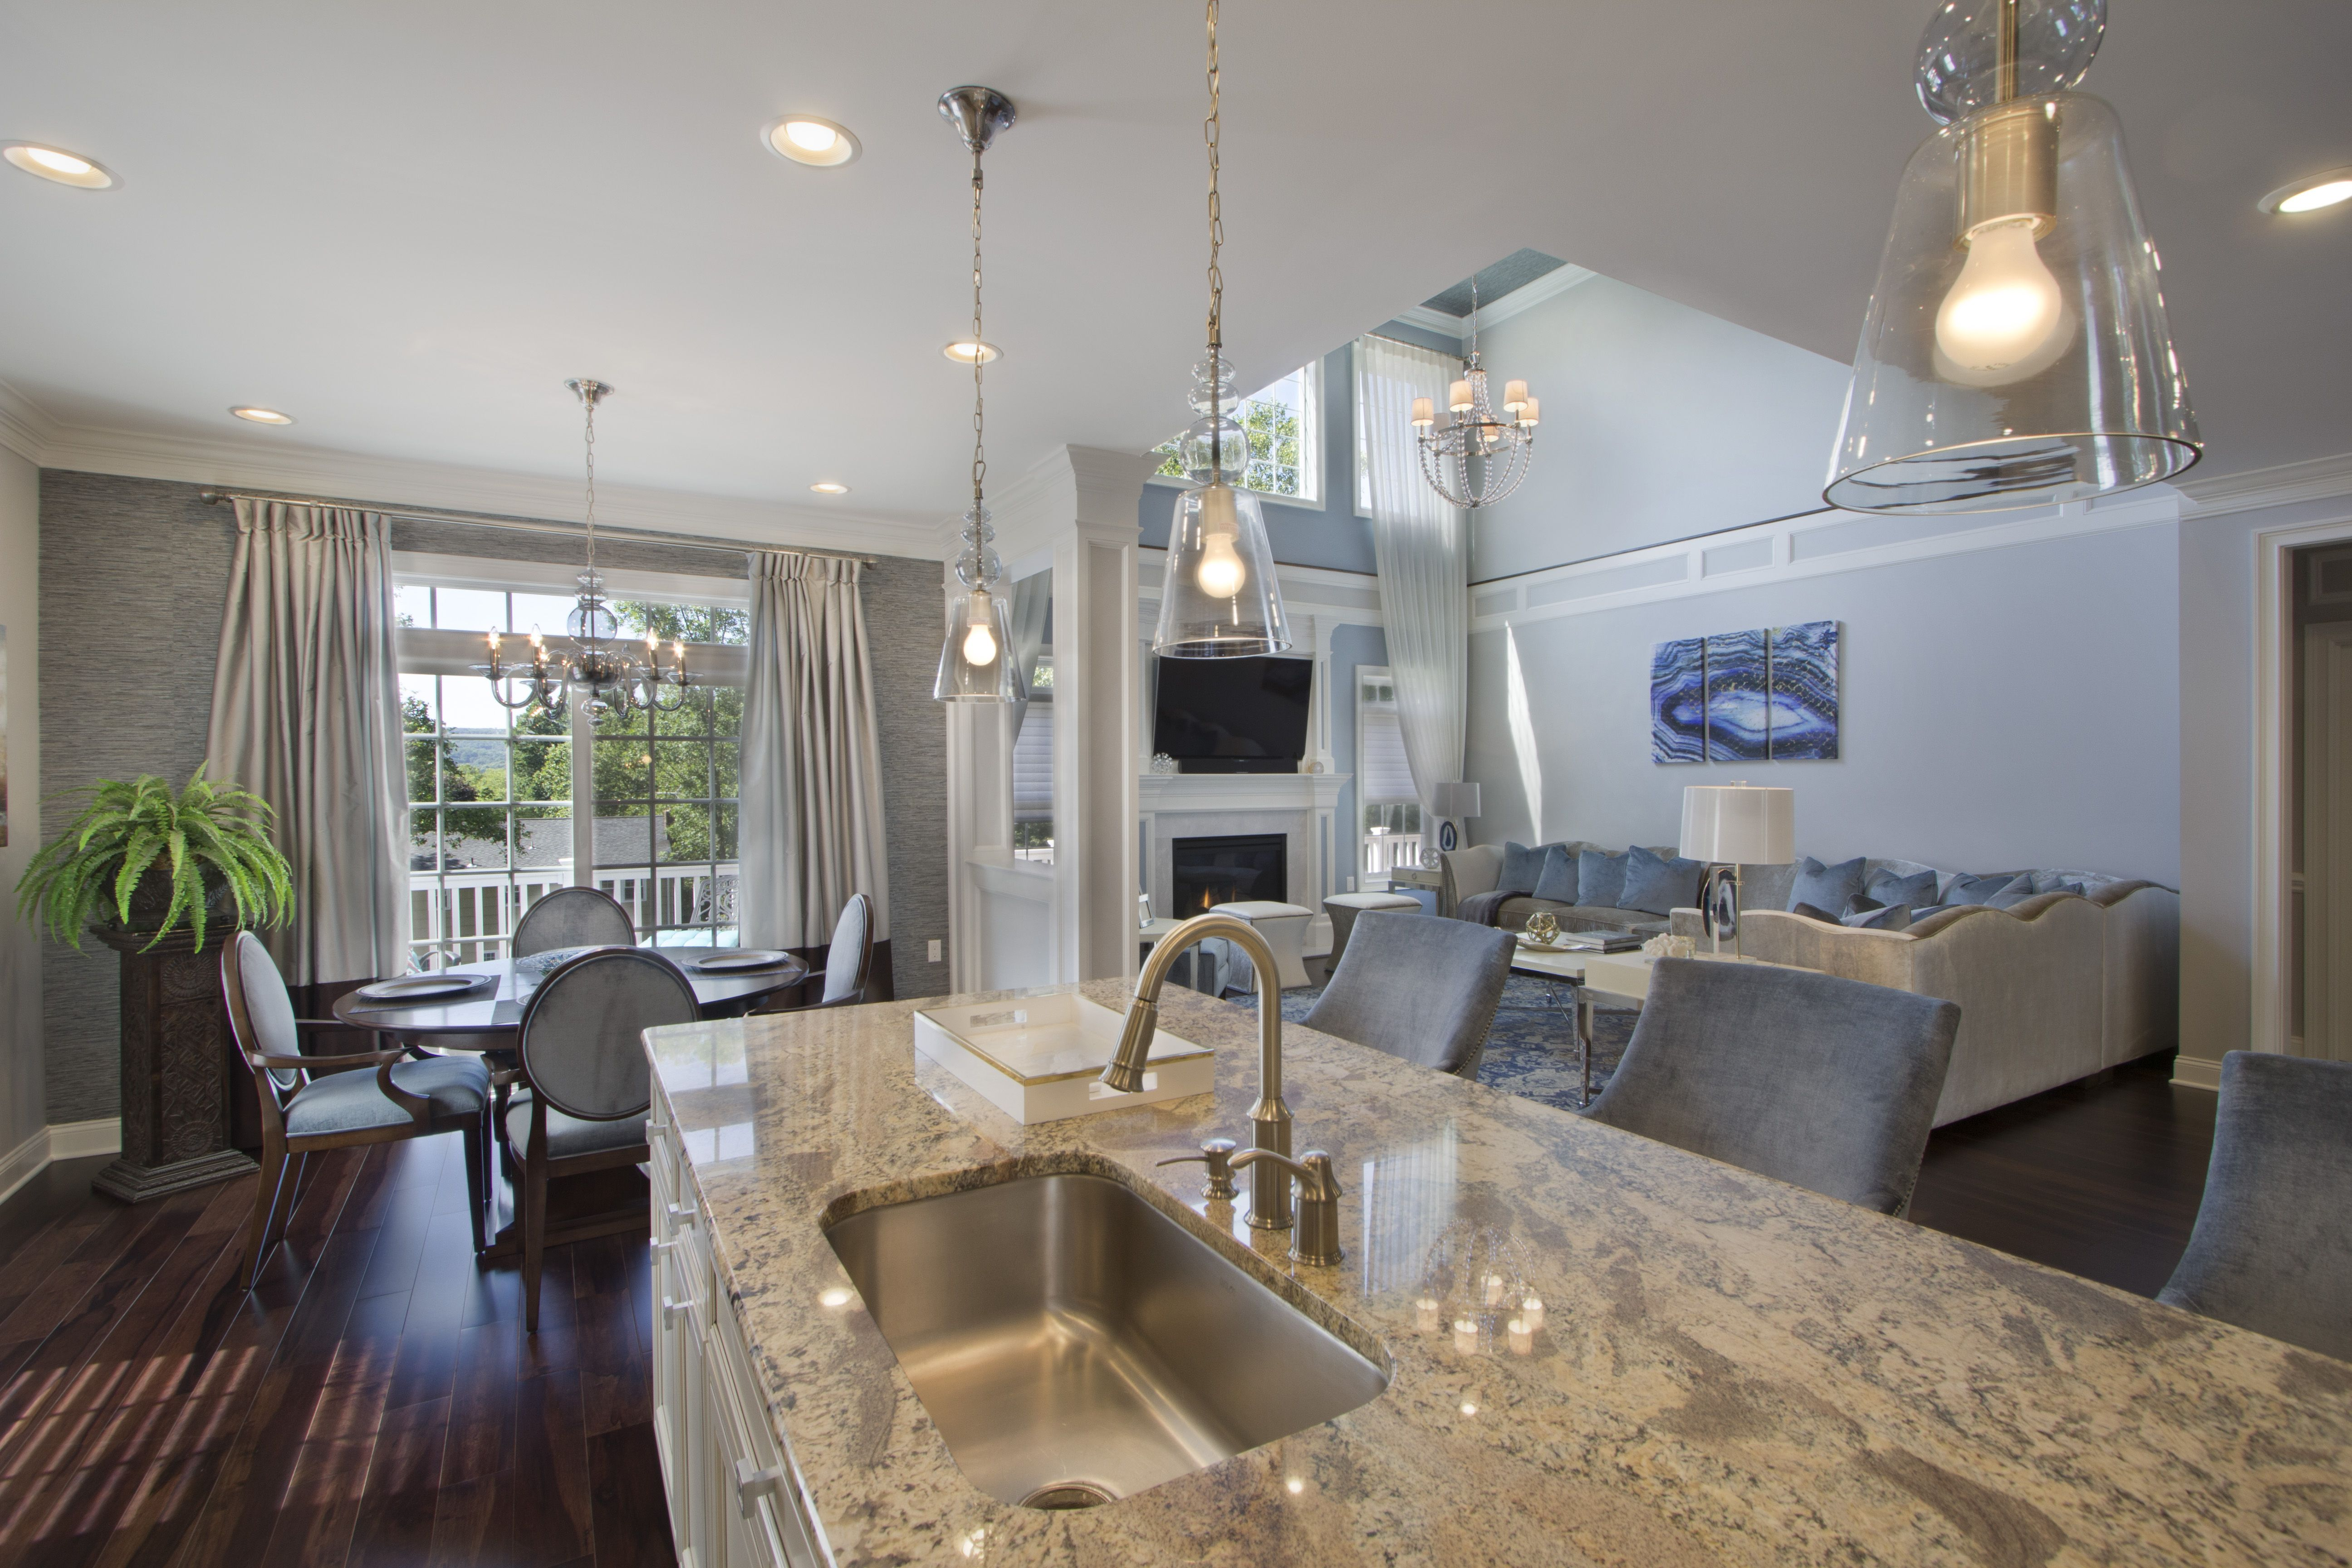 Beautiful Kitchen Counter Designed By VDA In Morristown NJ